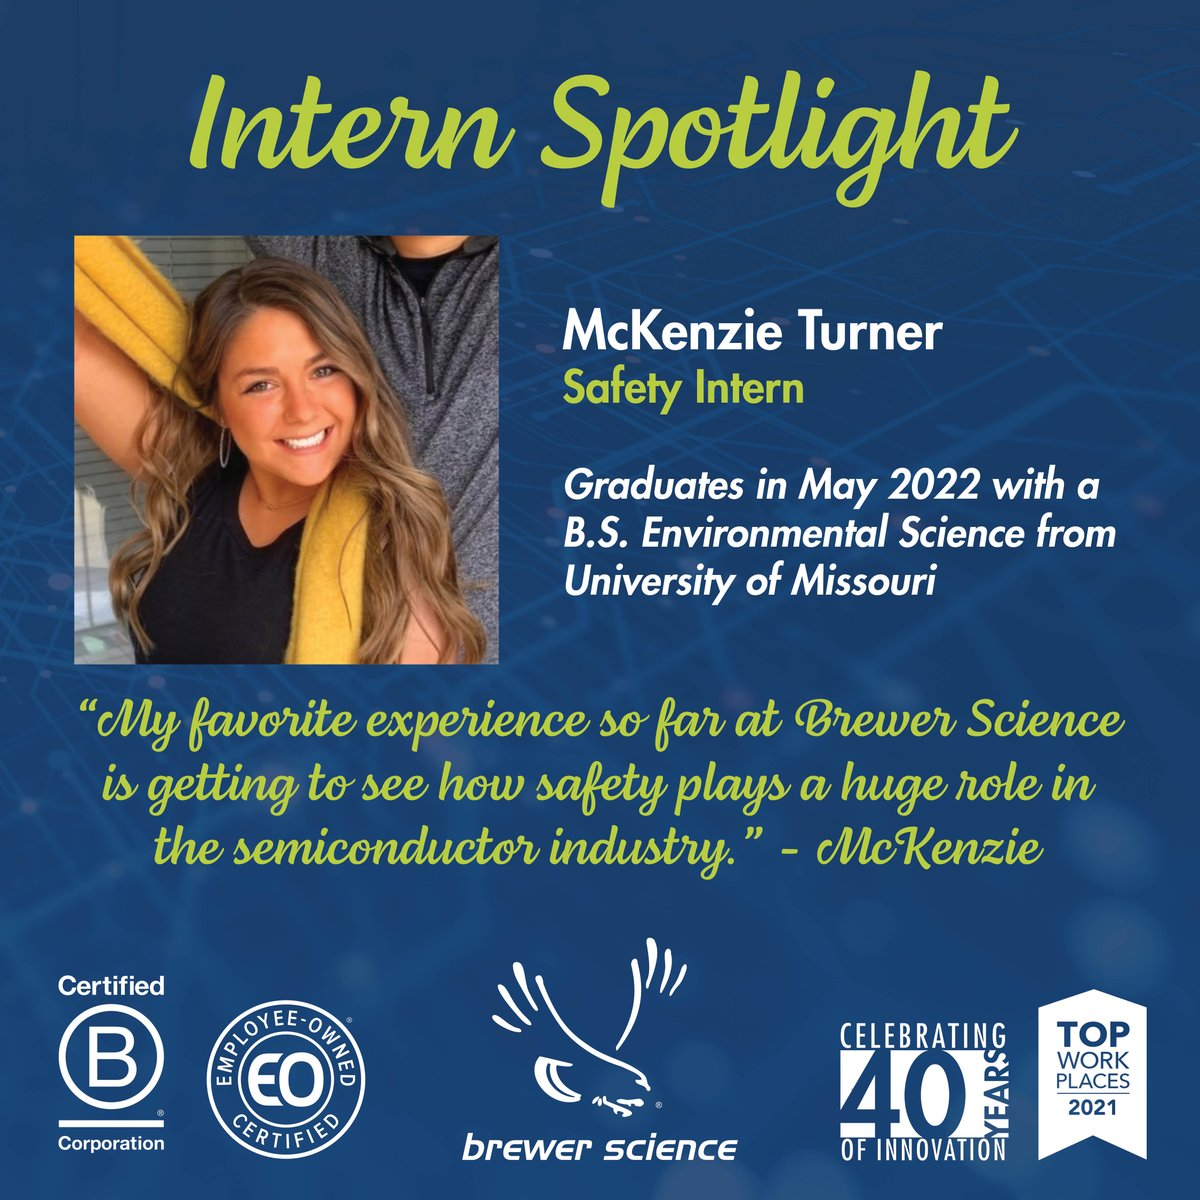 test Twitter Media - Today we are featuring McKenzie Turner, Safety Intern at Brewer Science! Learn more about our intern experiences on the website: https://t.co/RmzFSjYSf6 https://t.co/tcJjVP8k5x